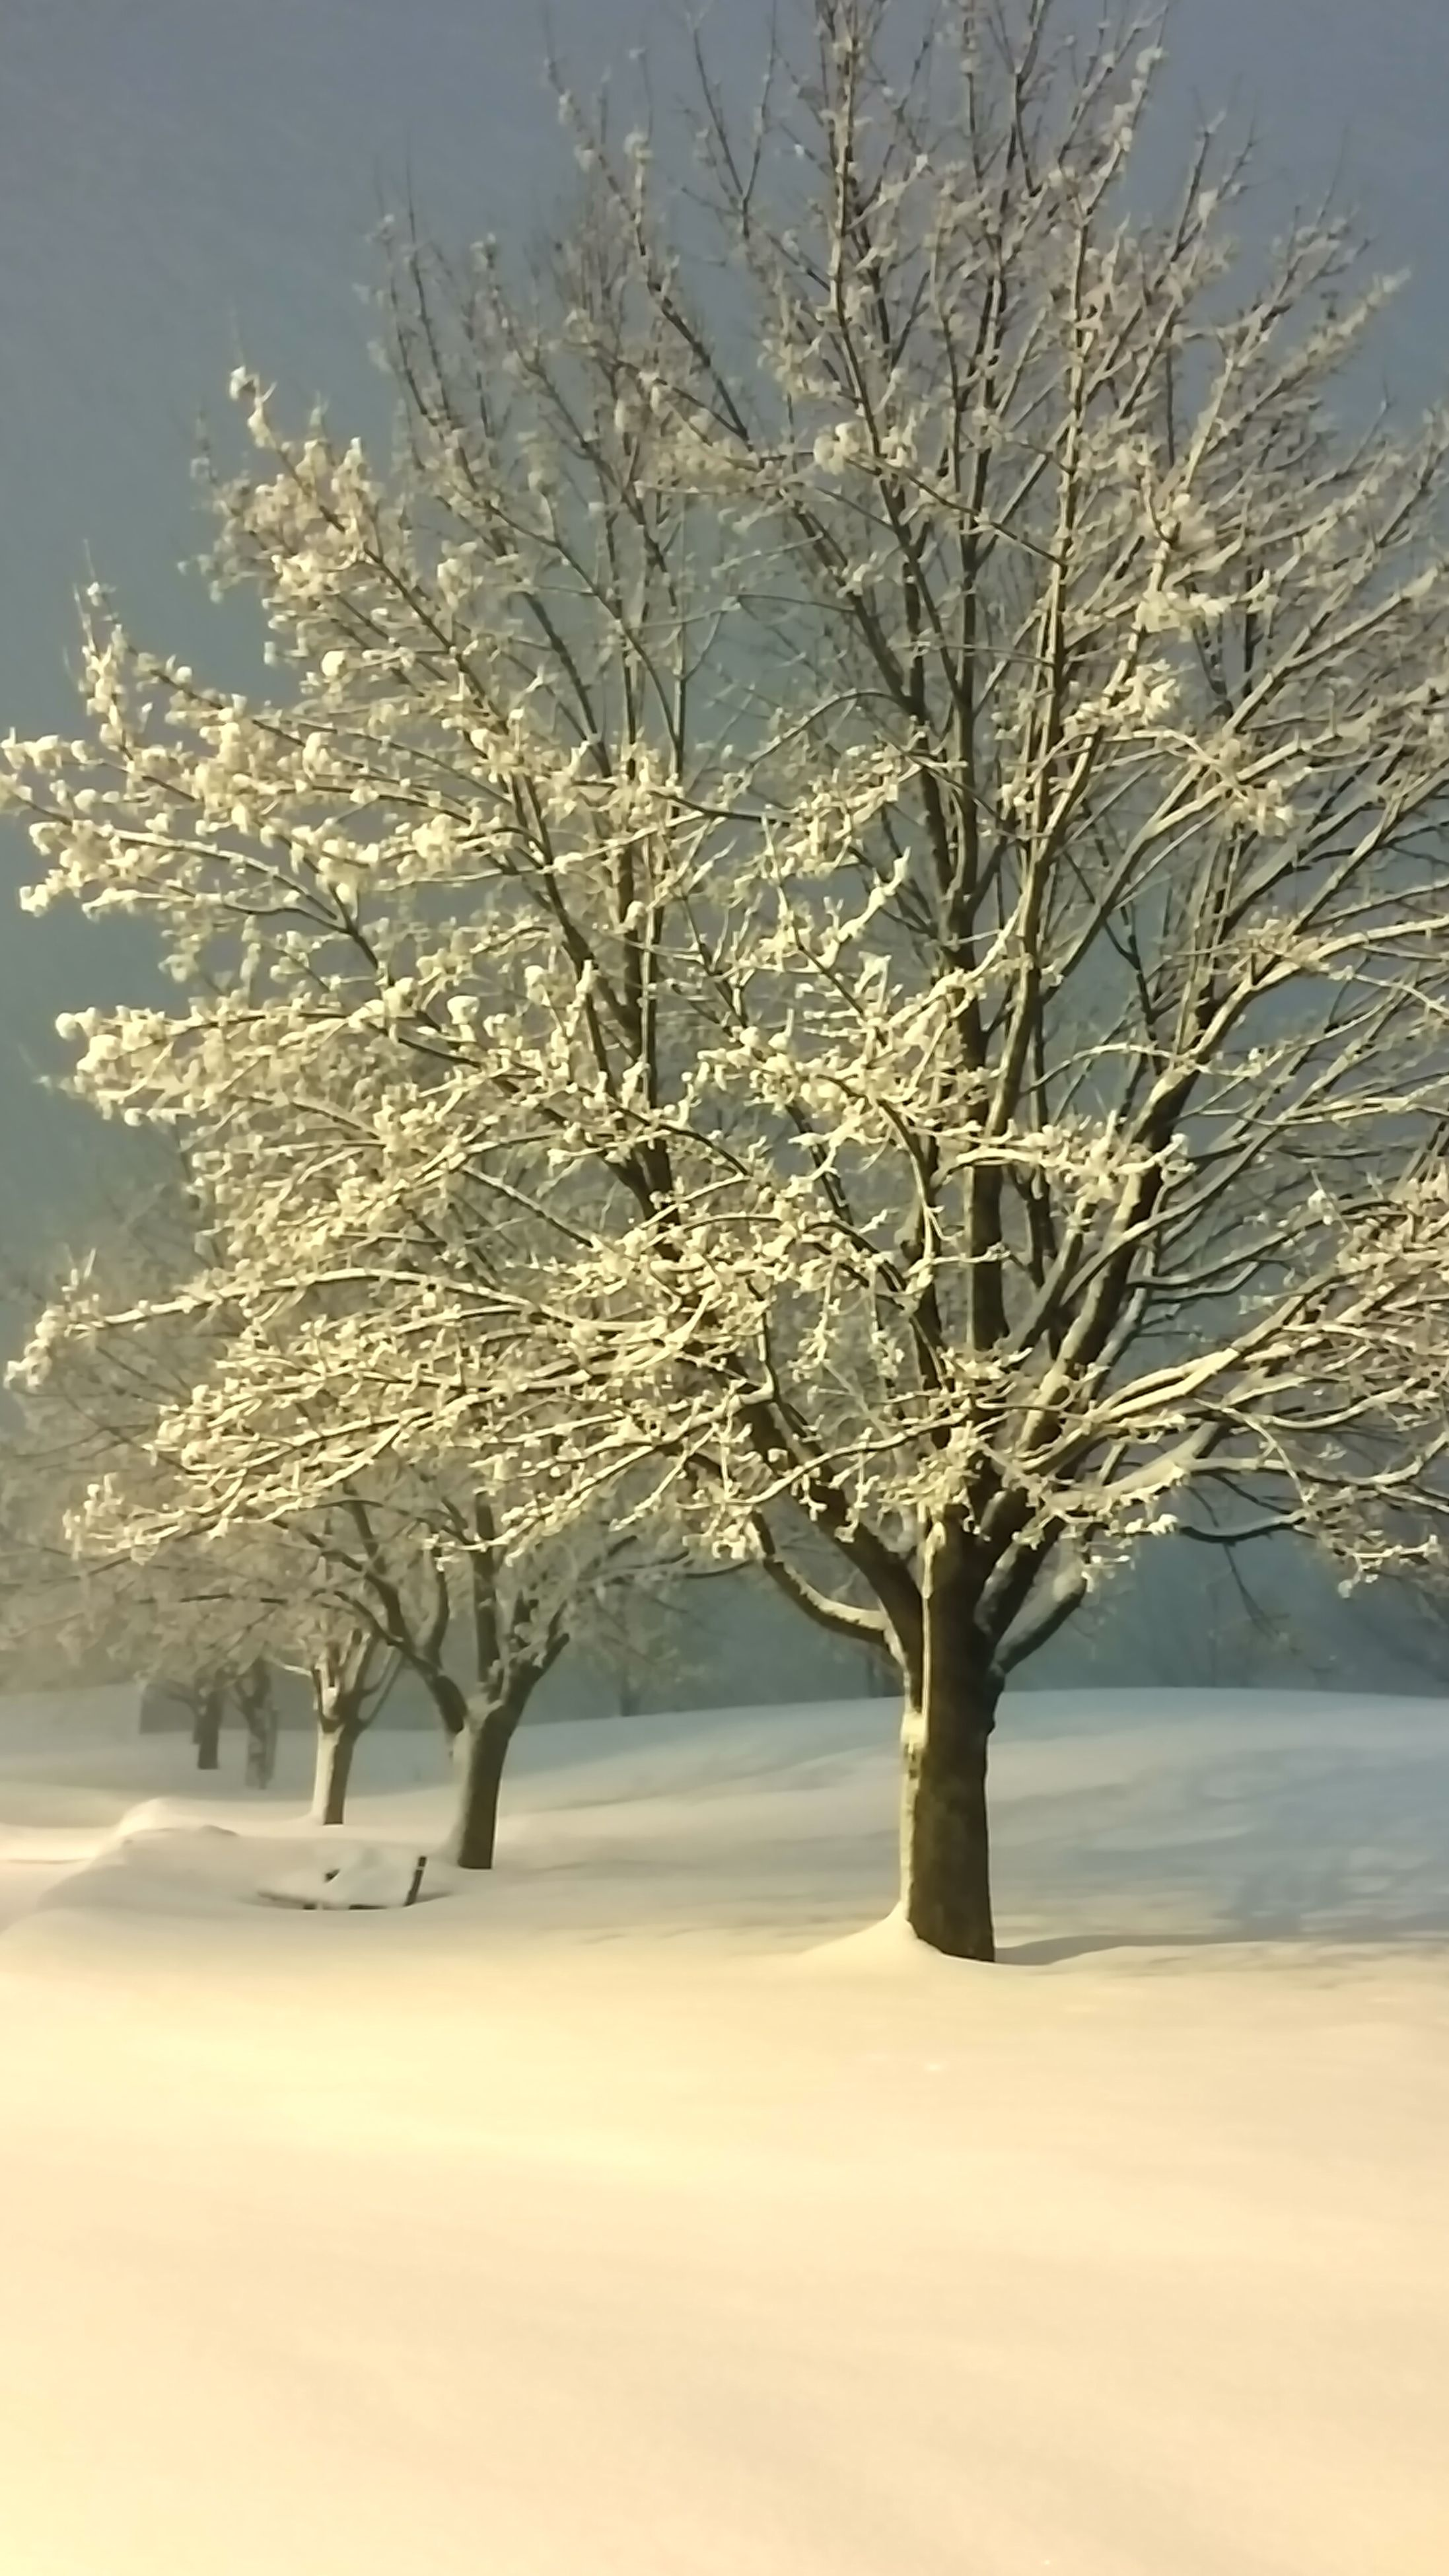 snow, bare tree, winter, cold temperature, branch, tree, tranquility, season, tranquil scene, nature, beauty in nature, landscape, scenics, field, sky, weather, frozen, covering, growth, outdoors